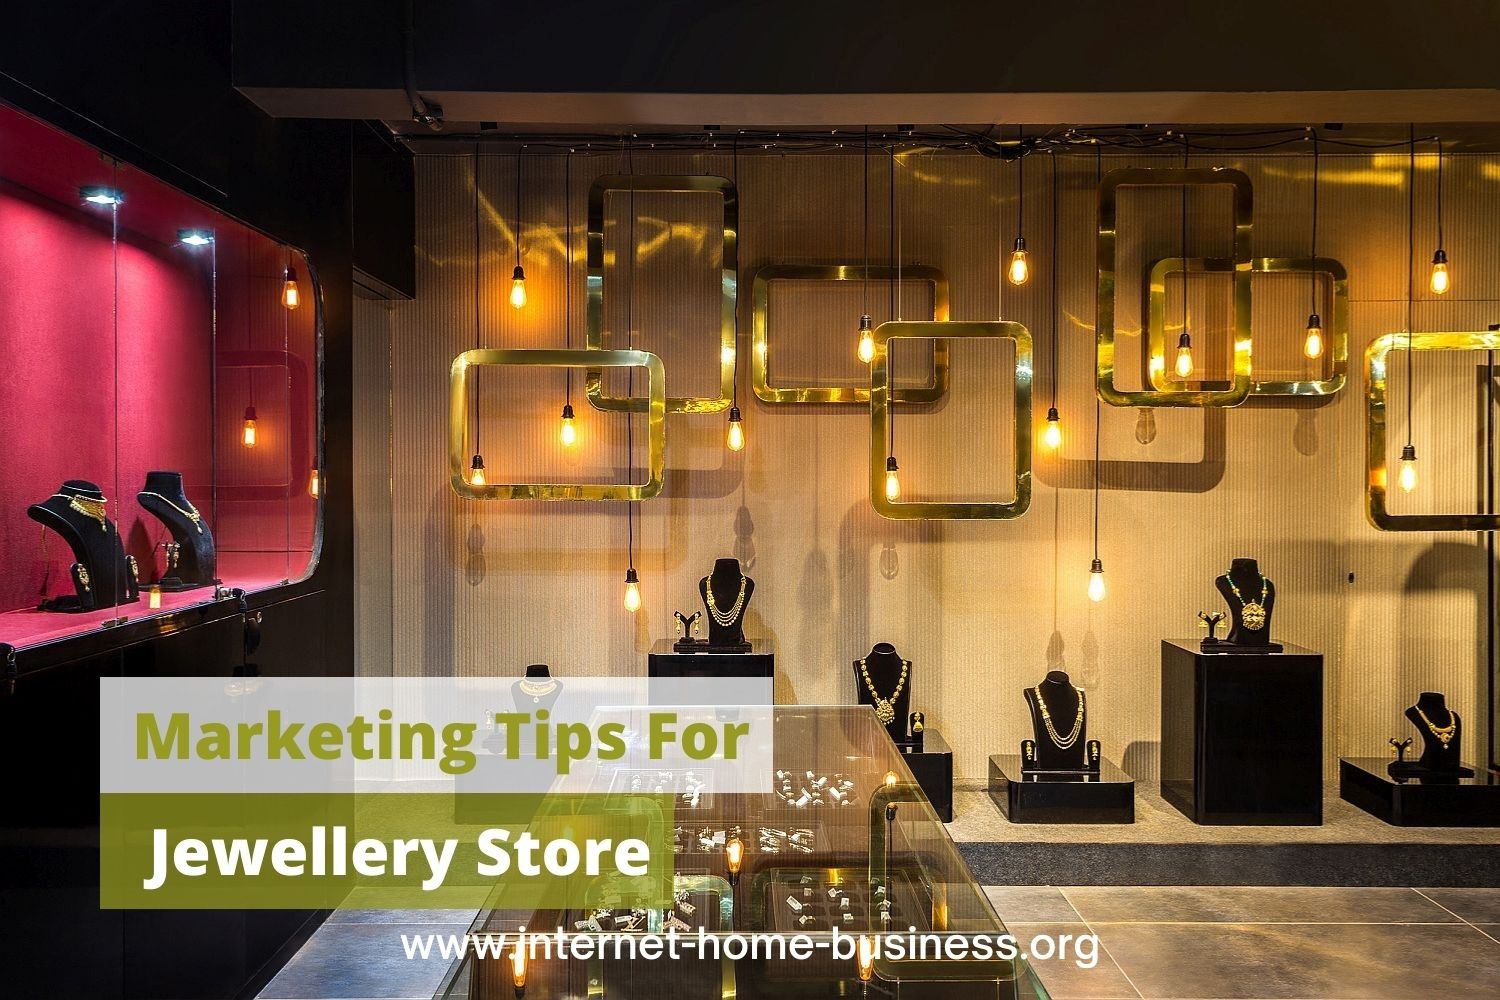 Marketing Tips For Your Jewellery Store